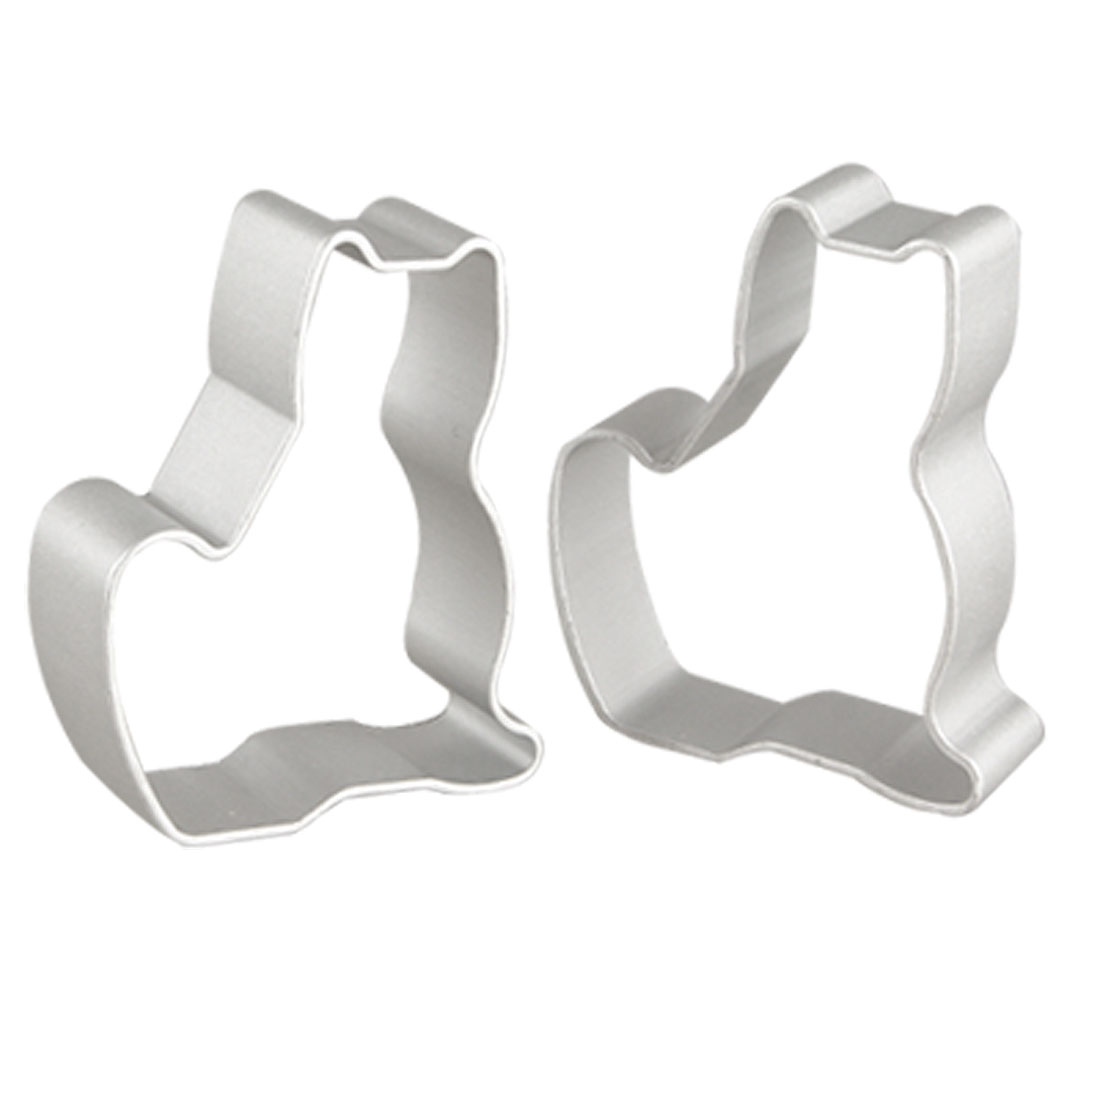 2 Pcs Silver Tone Sitting Cat Shaped Cake Cookie Cutters Moulds for Bakery